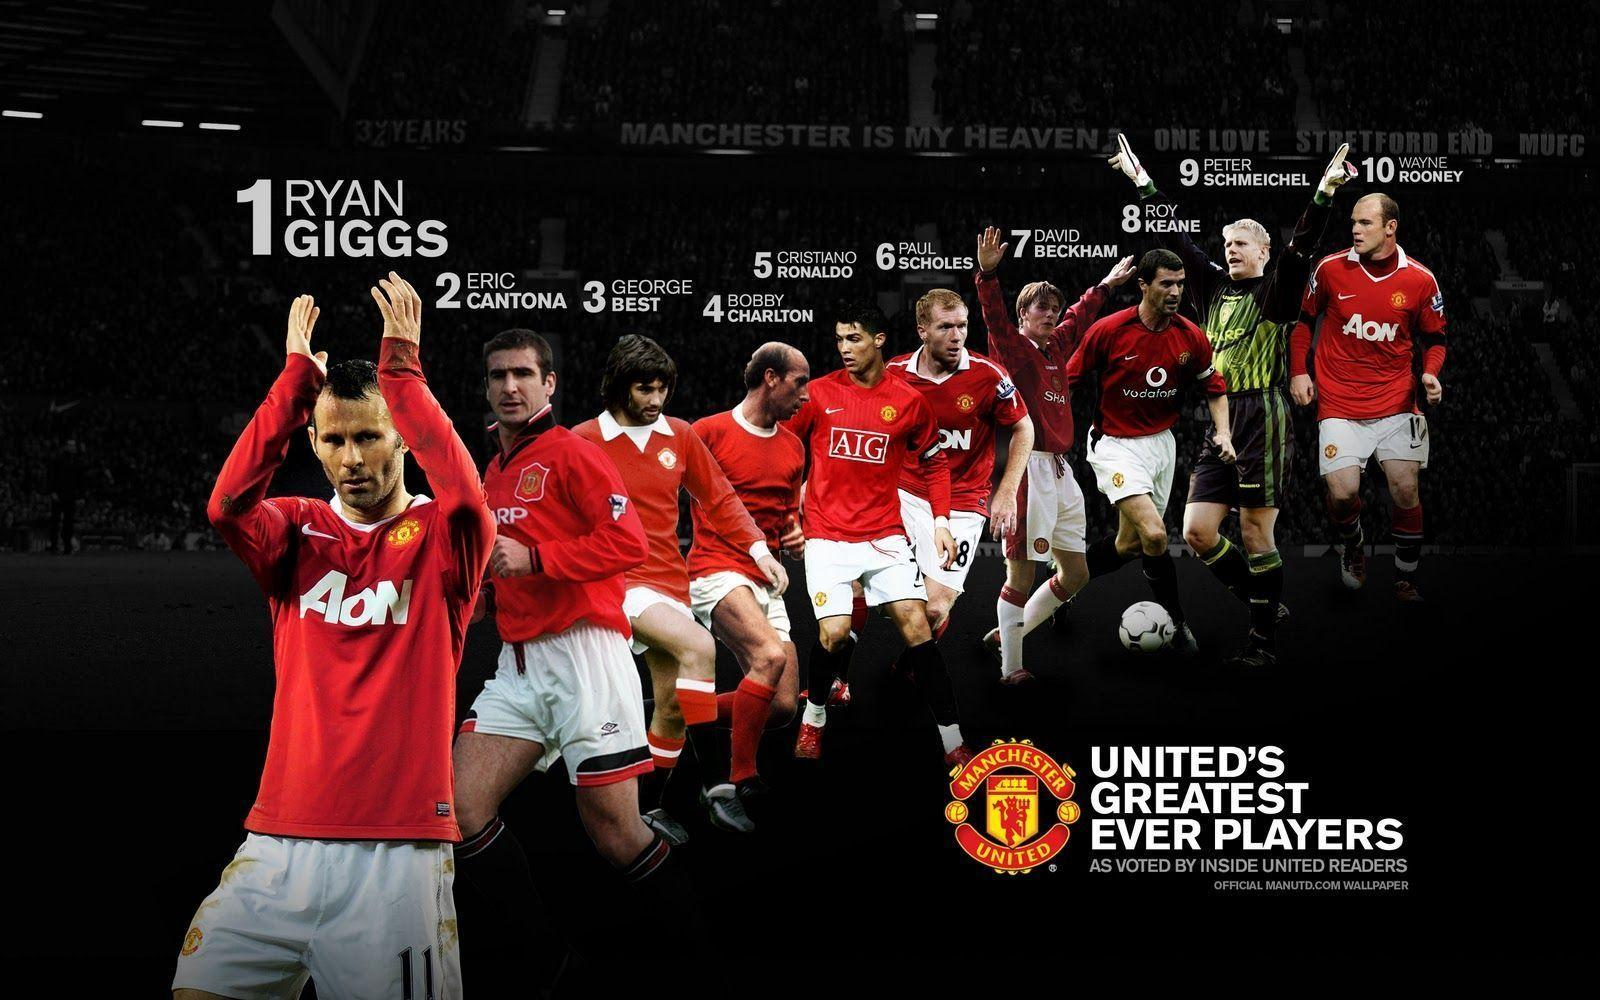 Latest man utd wallpapers wallpaper cave - Cool man united wallpapers ...